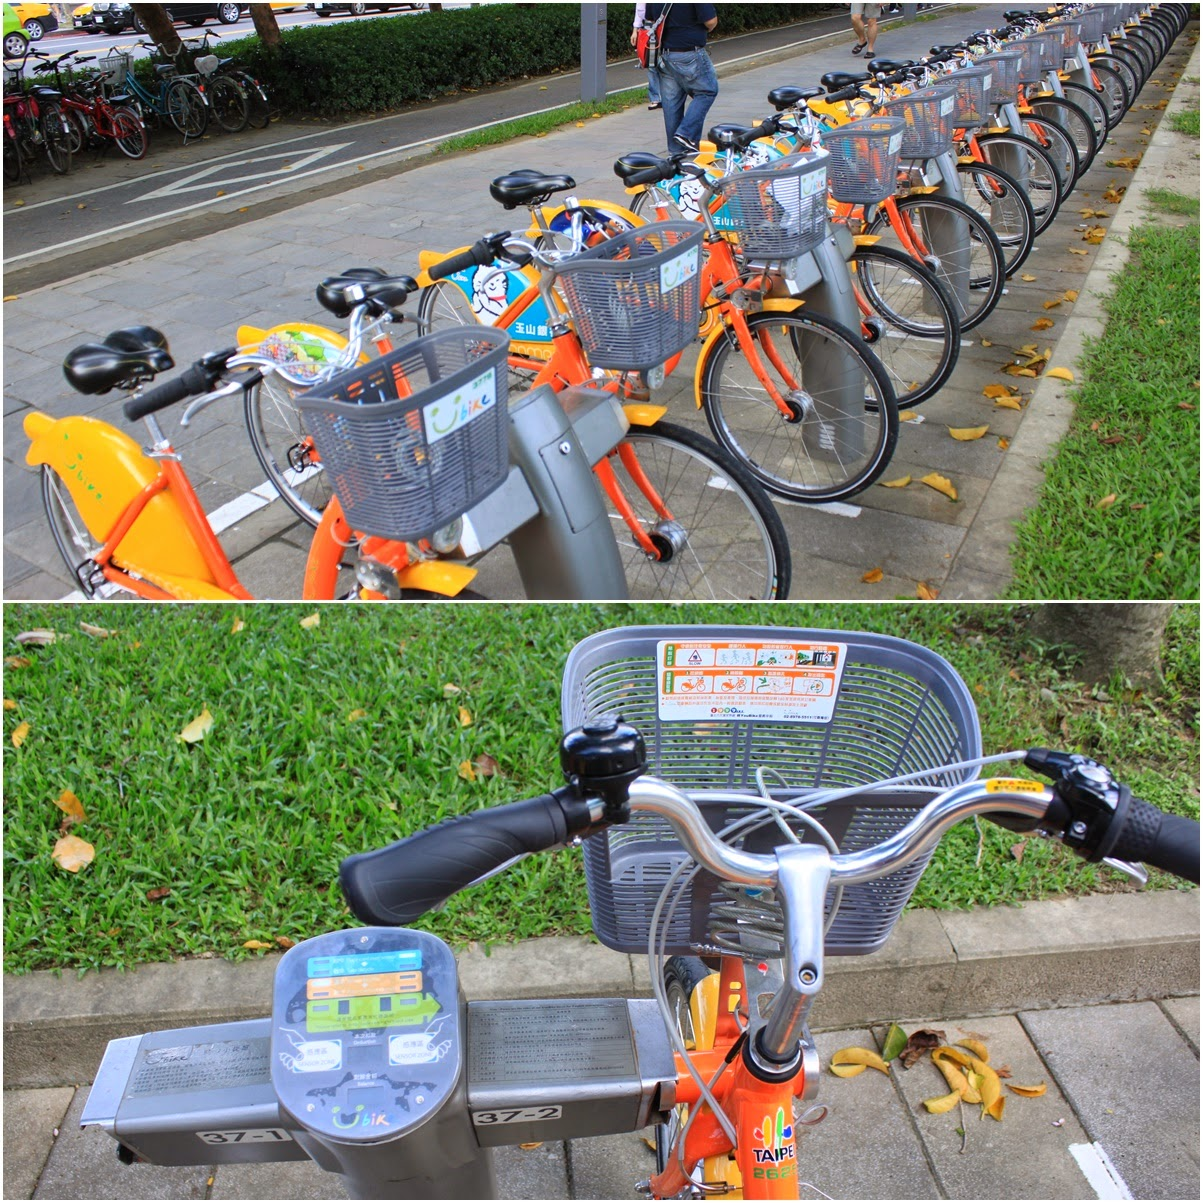 Bicycles rental in the capital city of Taipei in Taiwan to reduce air pollution and promote green environment